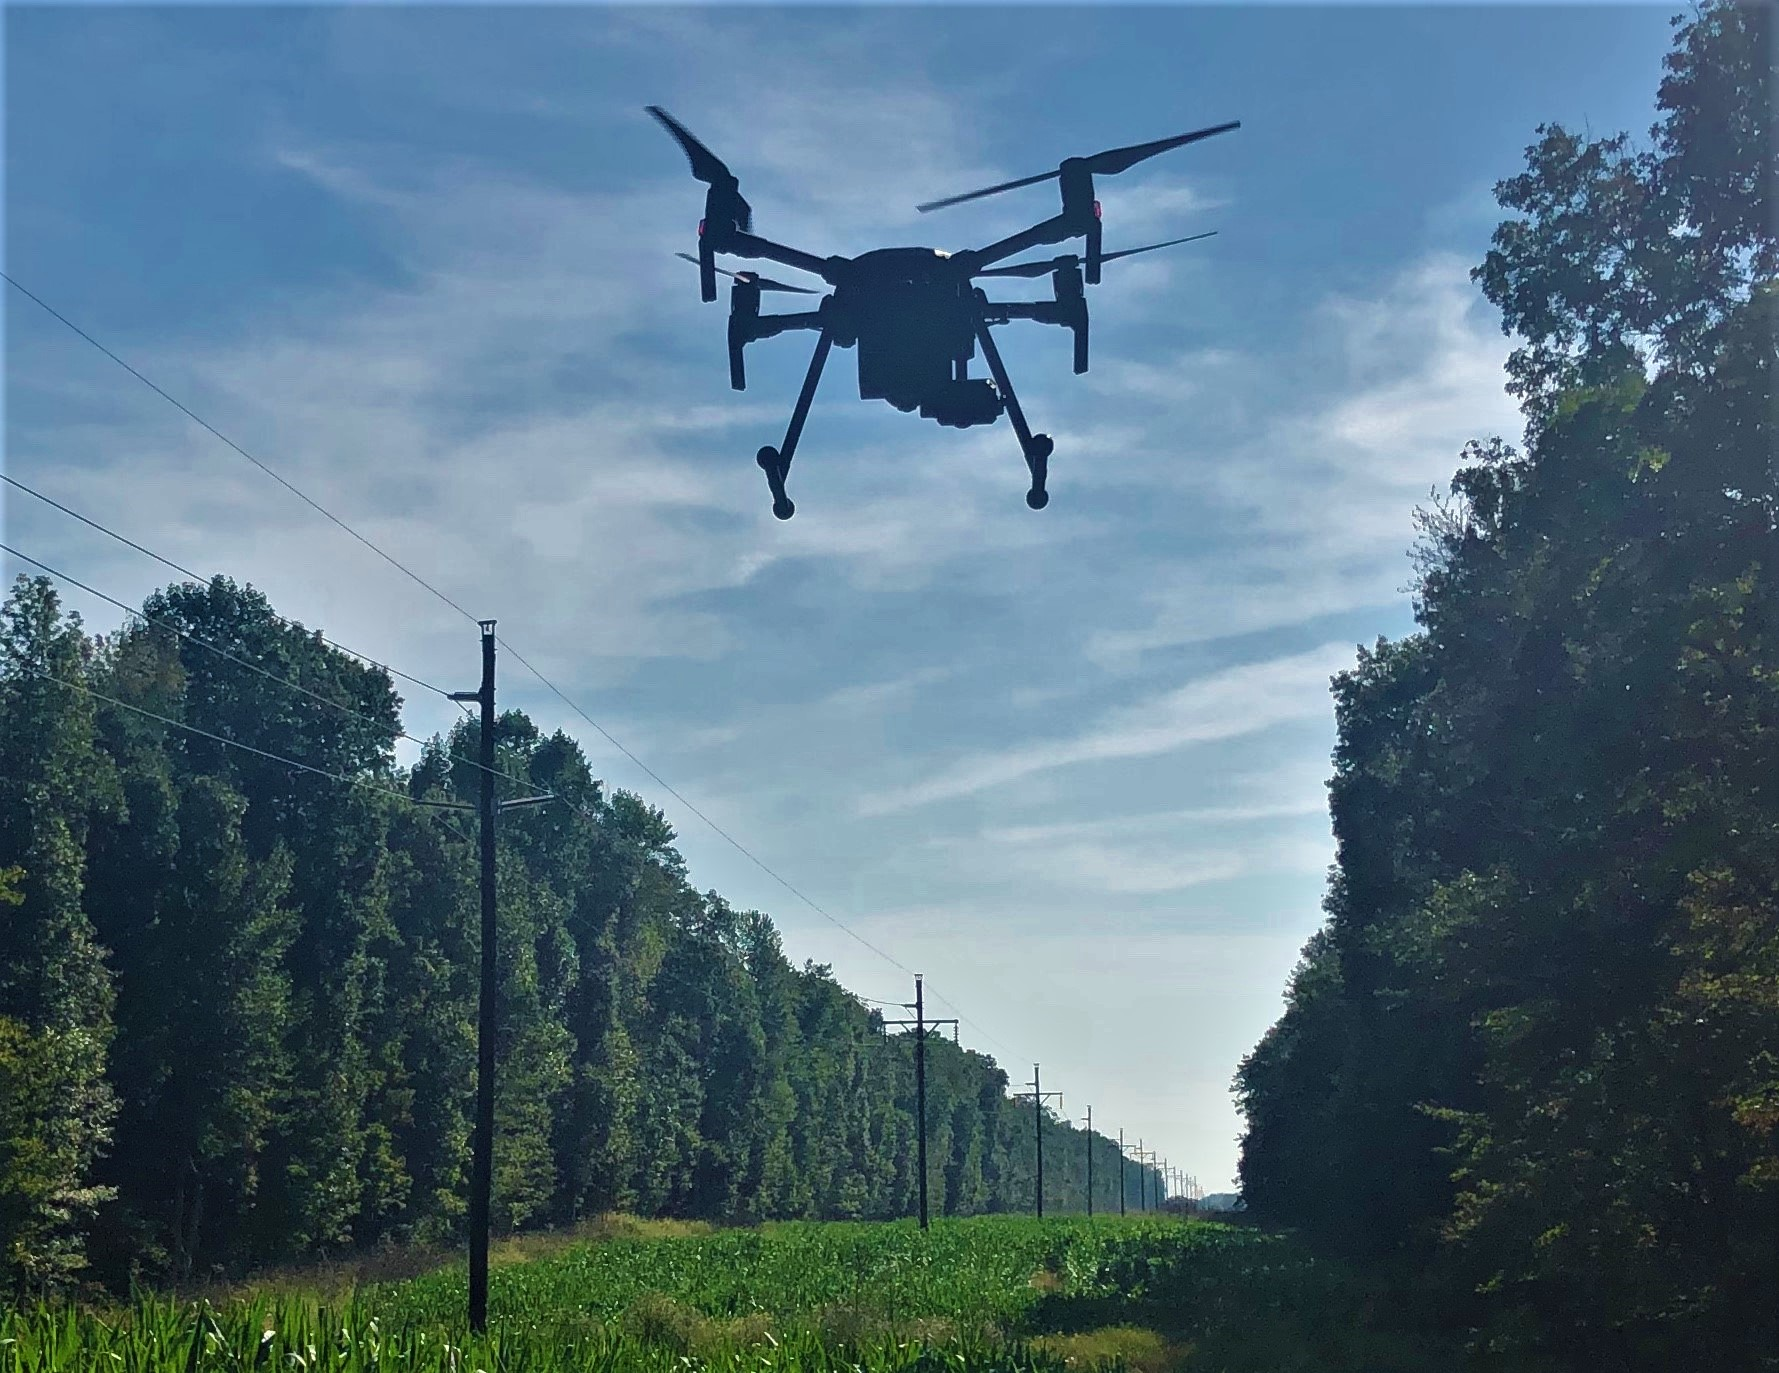 What You Need to Know About Using Drones for Utility Inspections